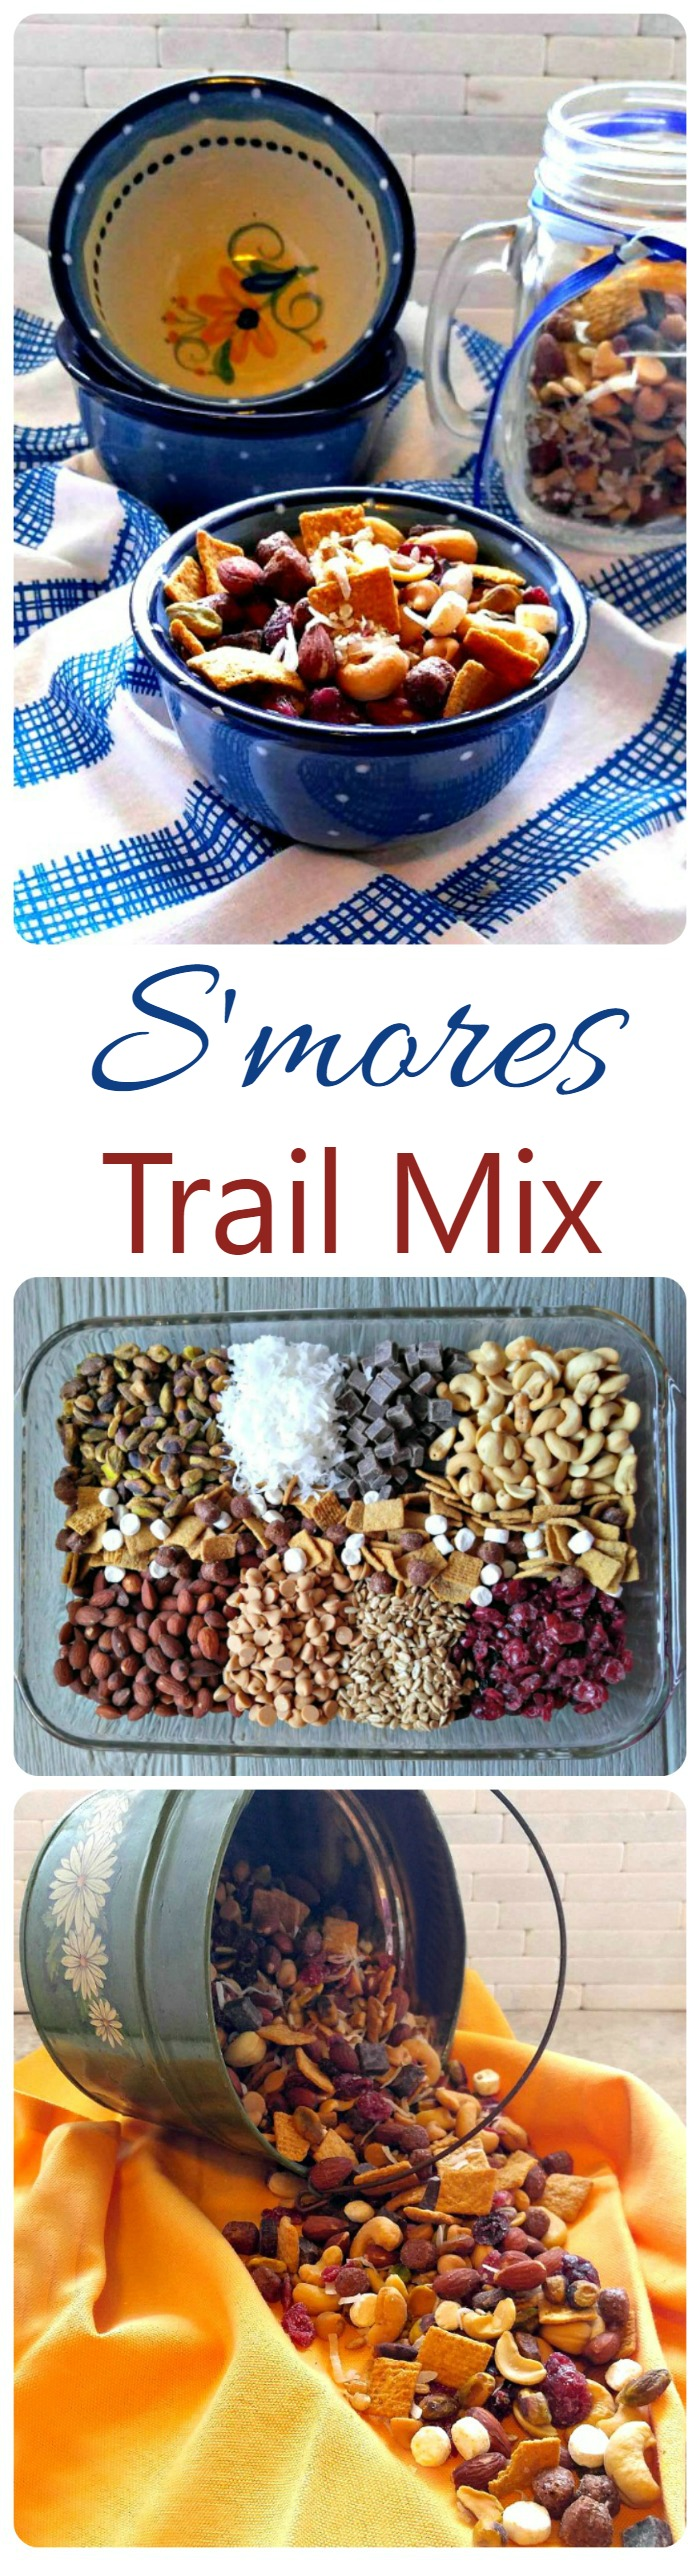 S'mores Trail Mix - Fun & Tasty Snack